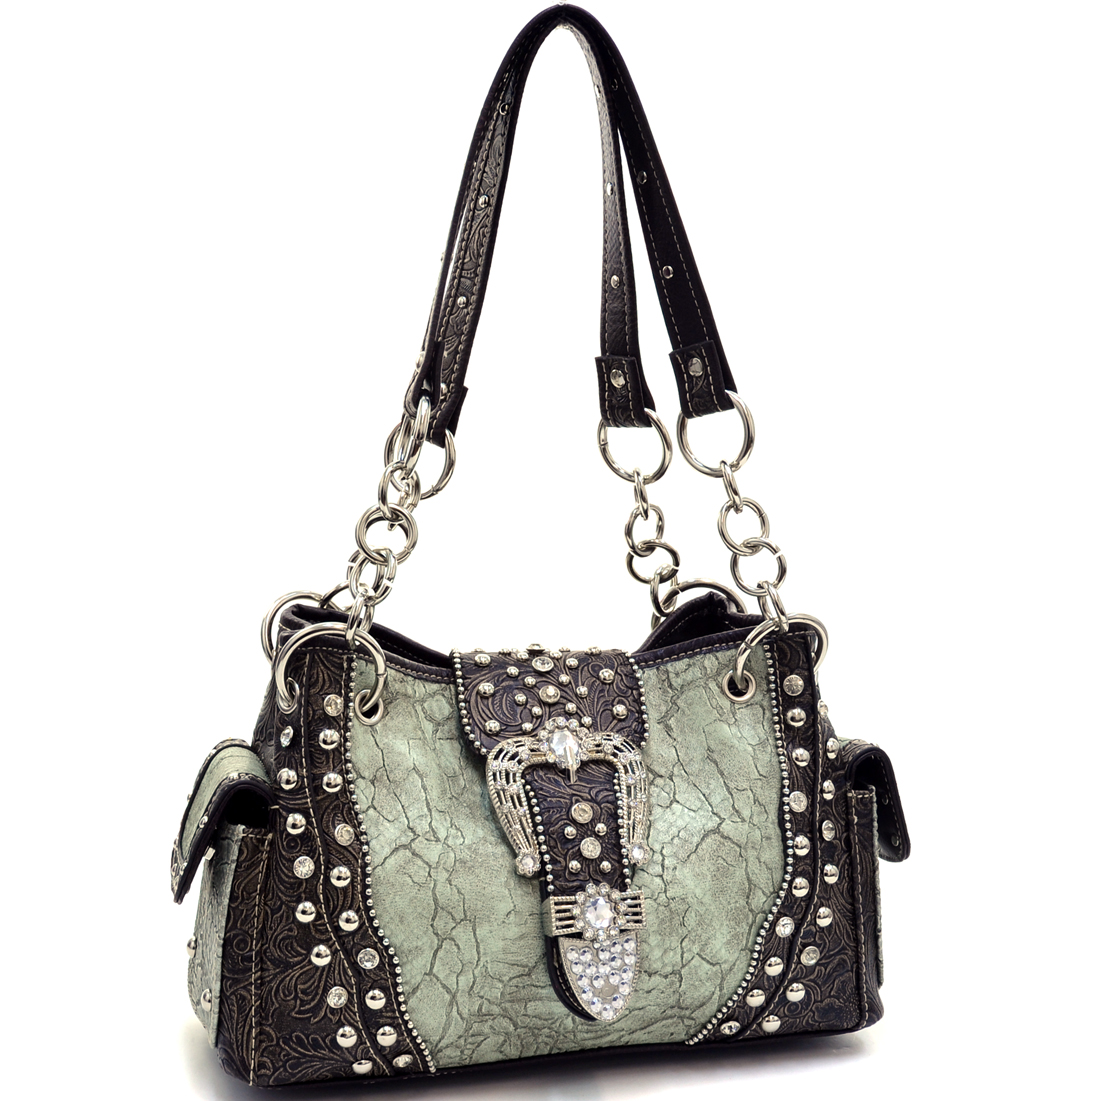 Classic Rhinestone Studded Western Shoulder Bag With Floral Trim